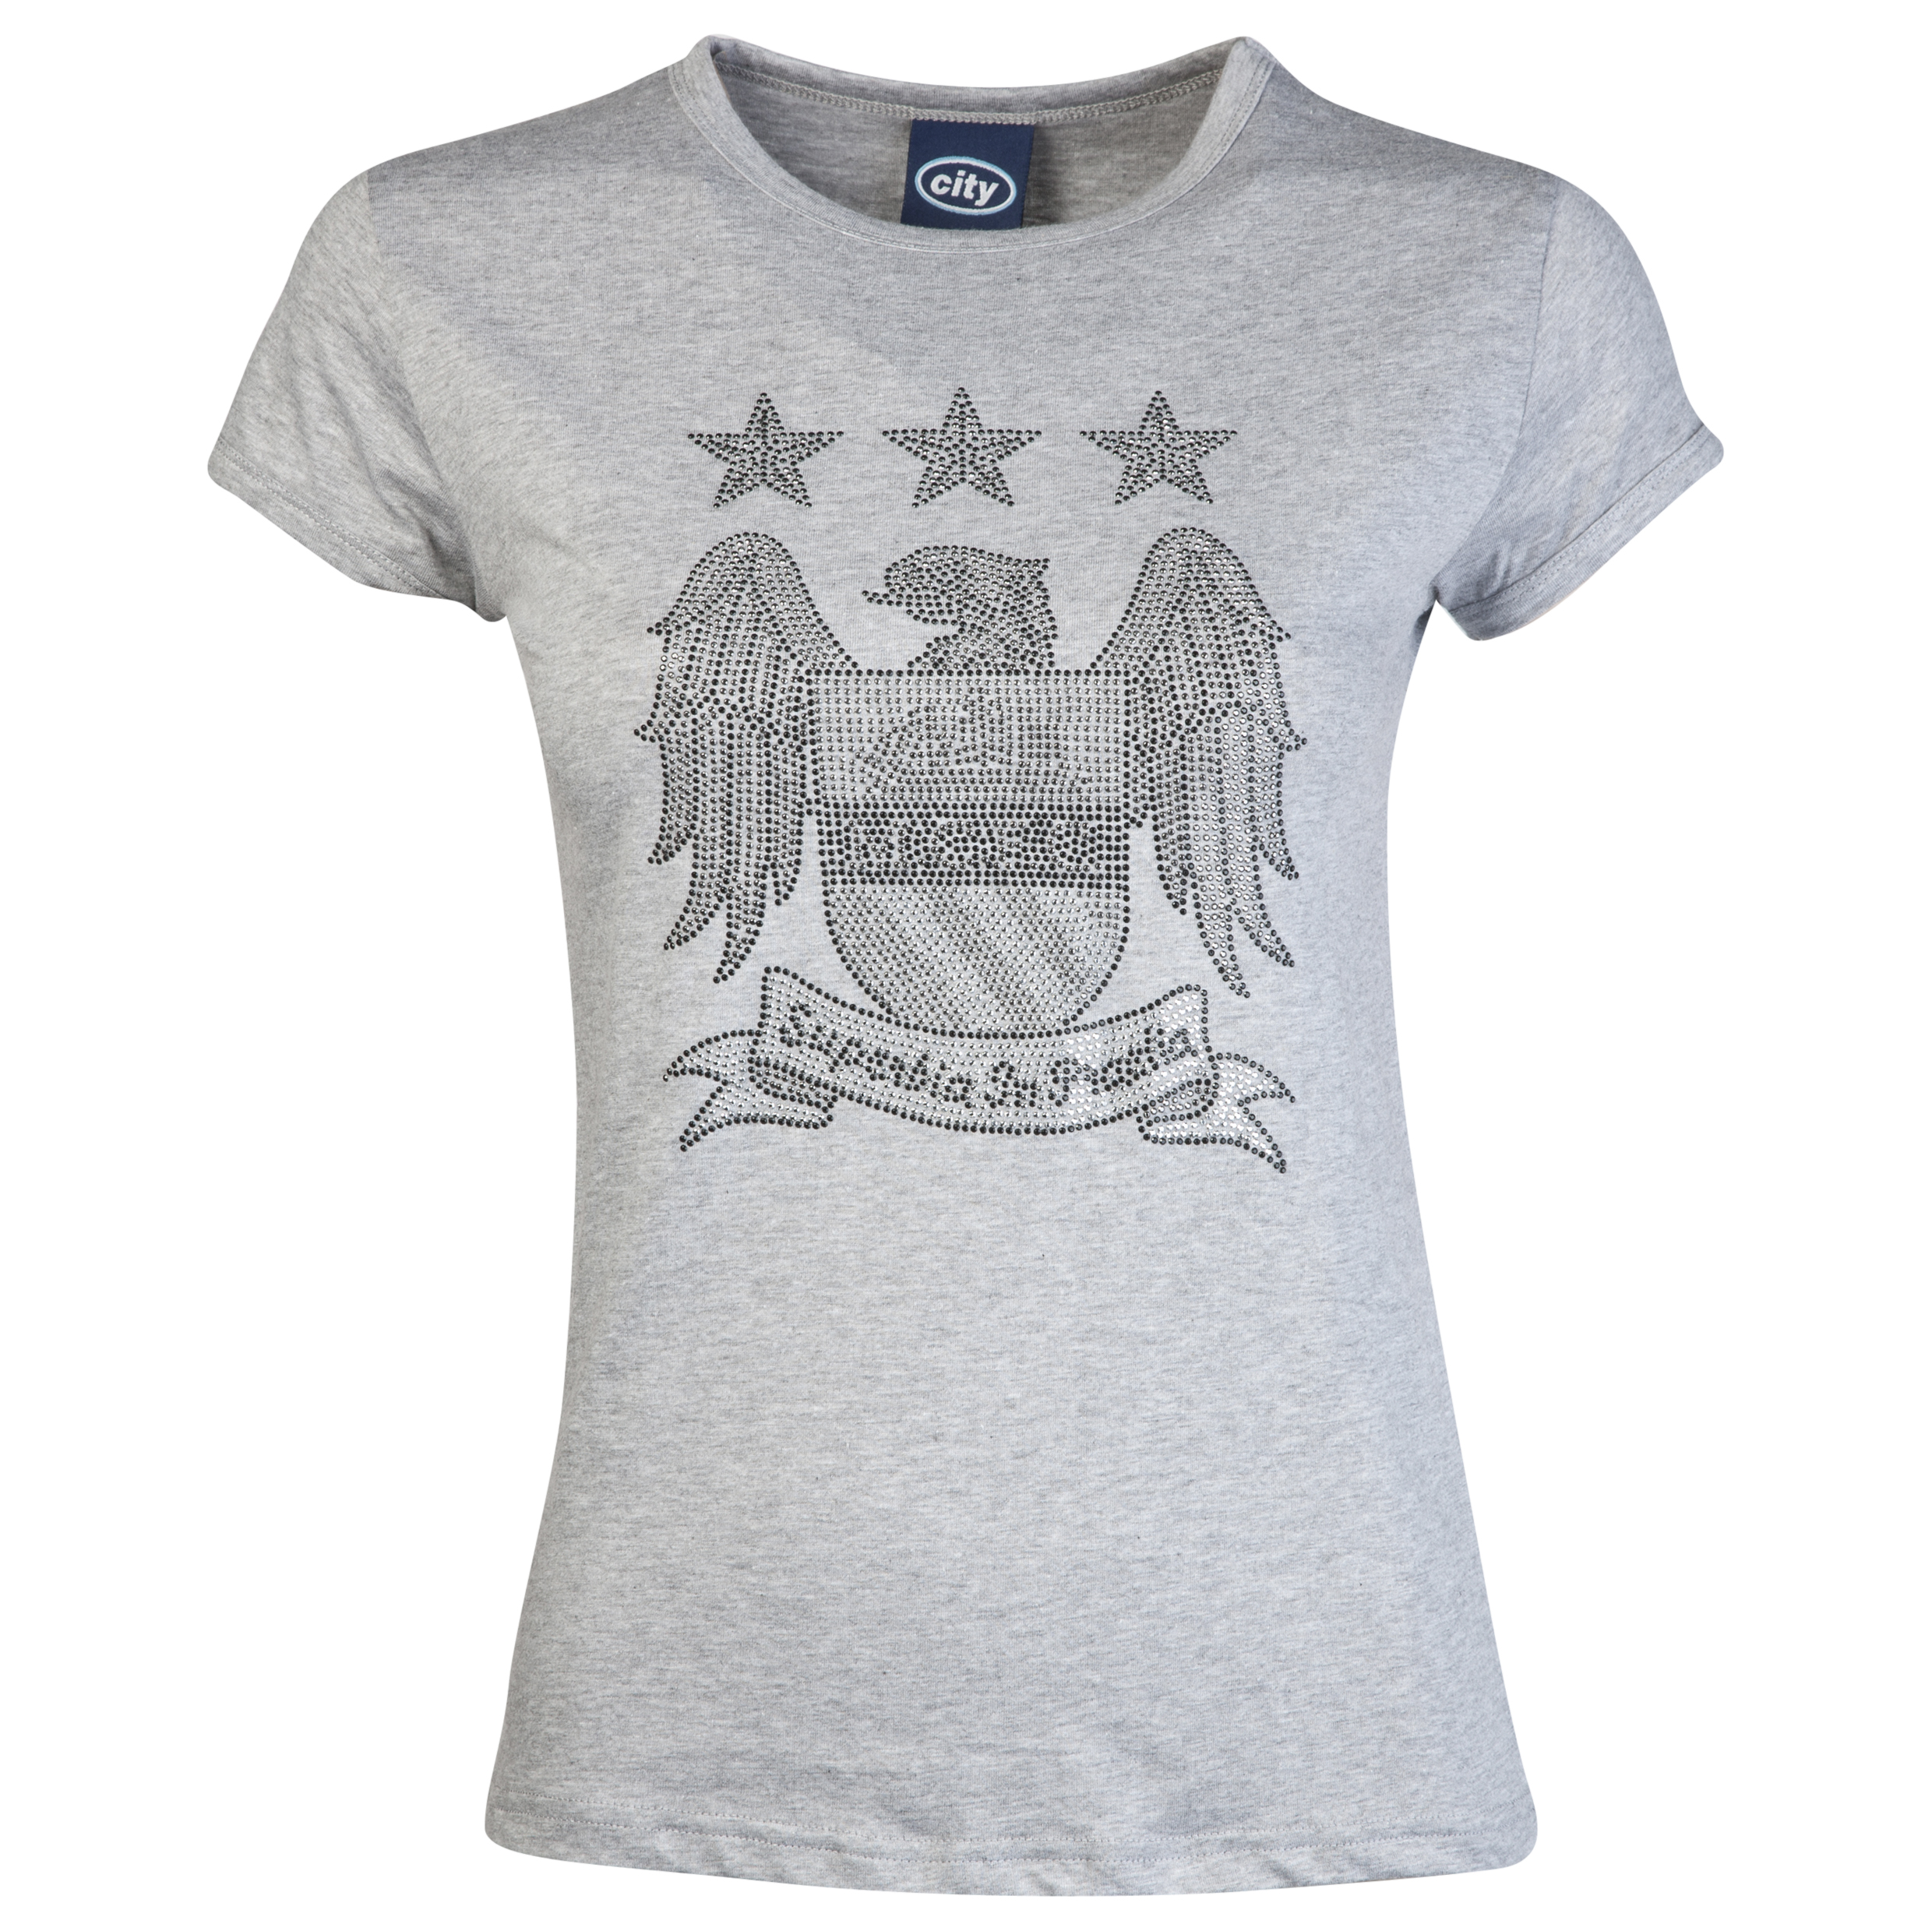 Manchester City Rhinestone T-Shirt - Grey Marl - Womens